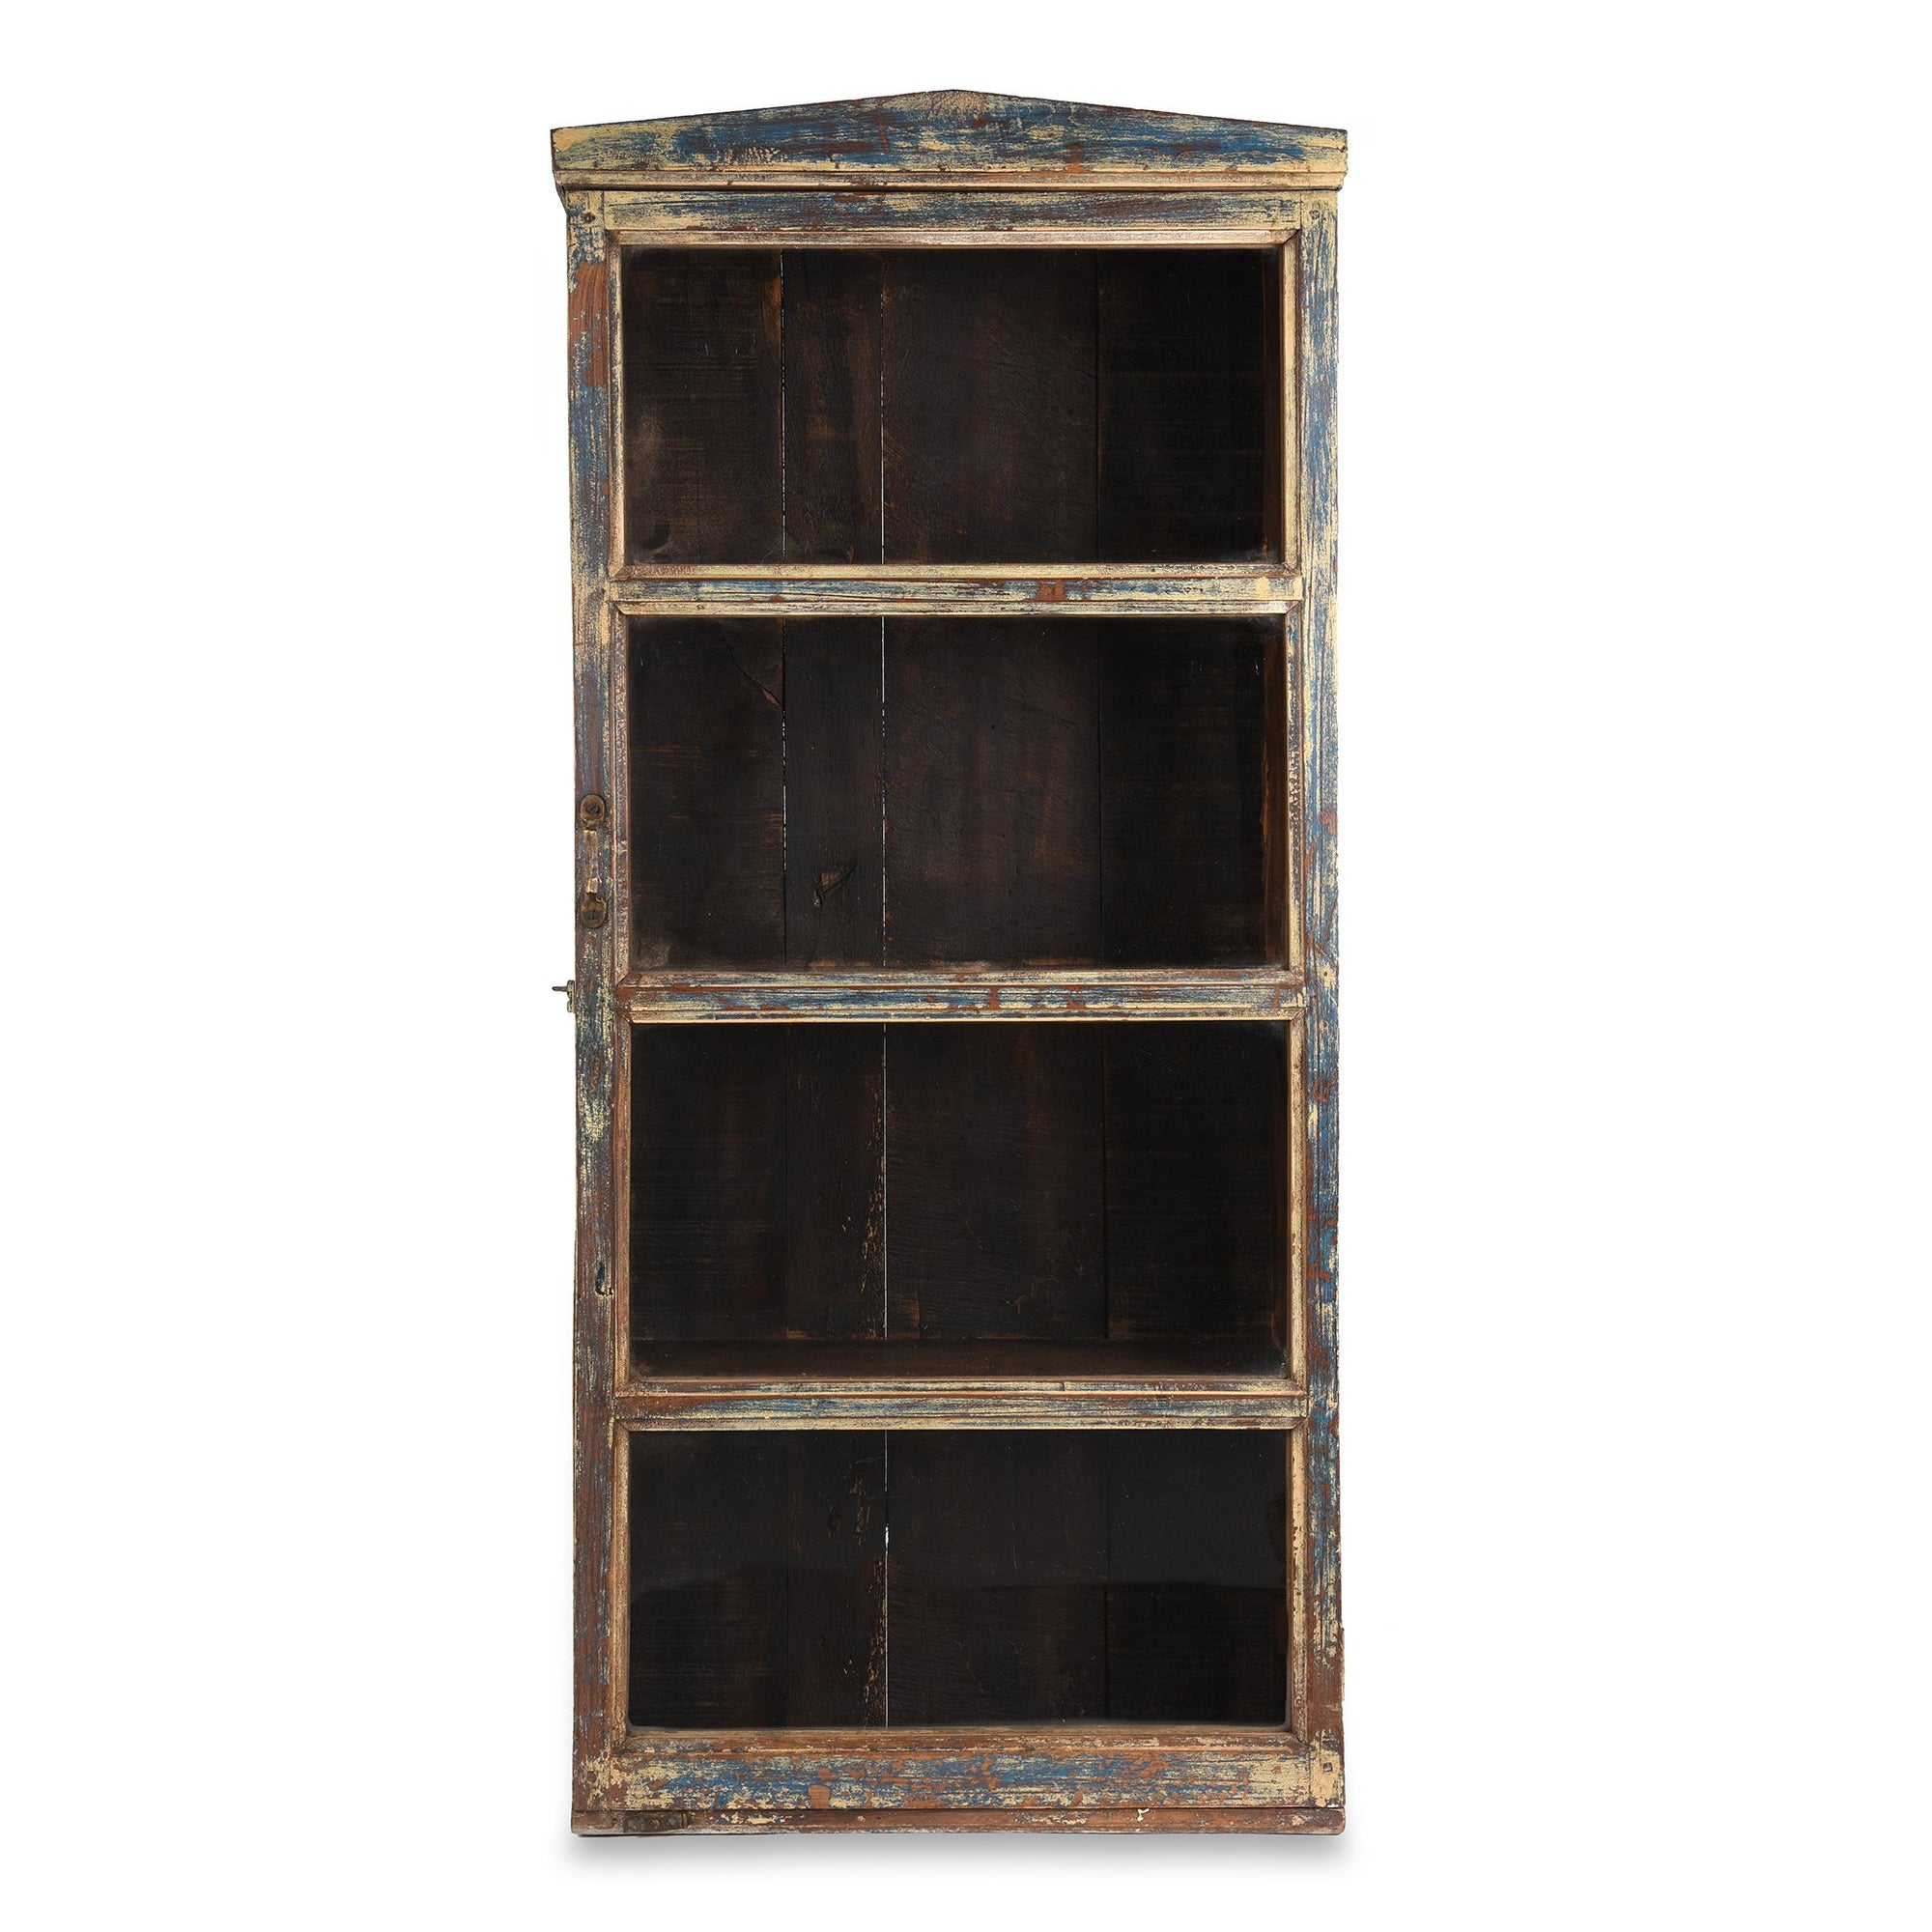 Painted Teak Glazed Wall Cabinet - Ca 1930 | Indigo Antiques